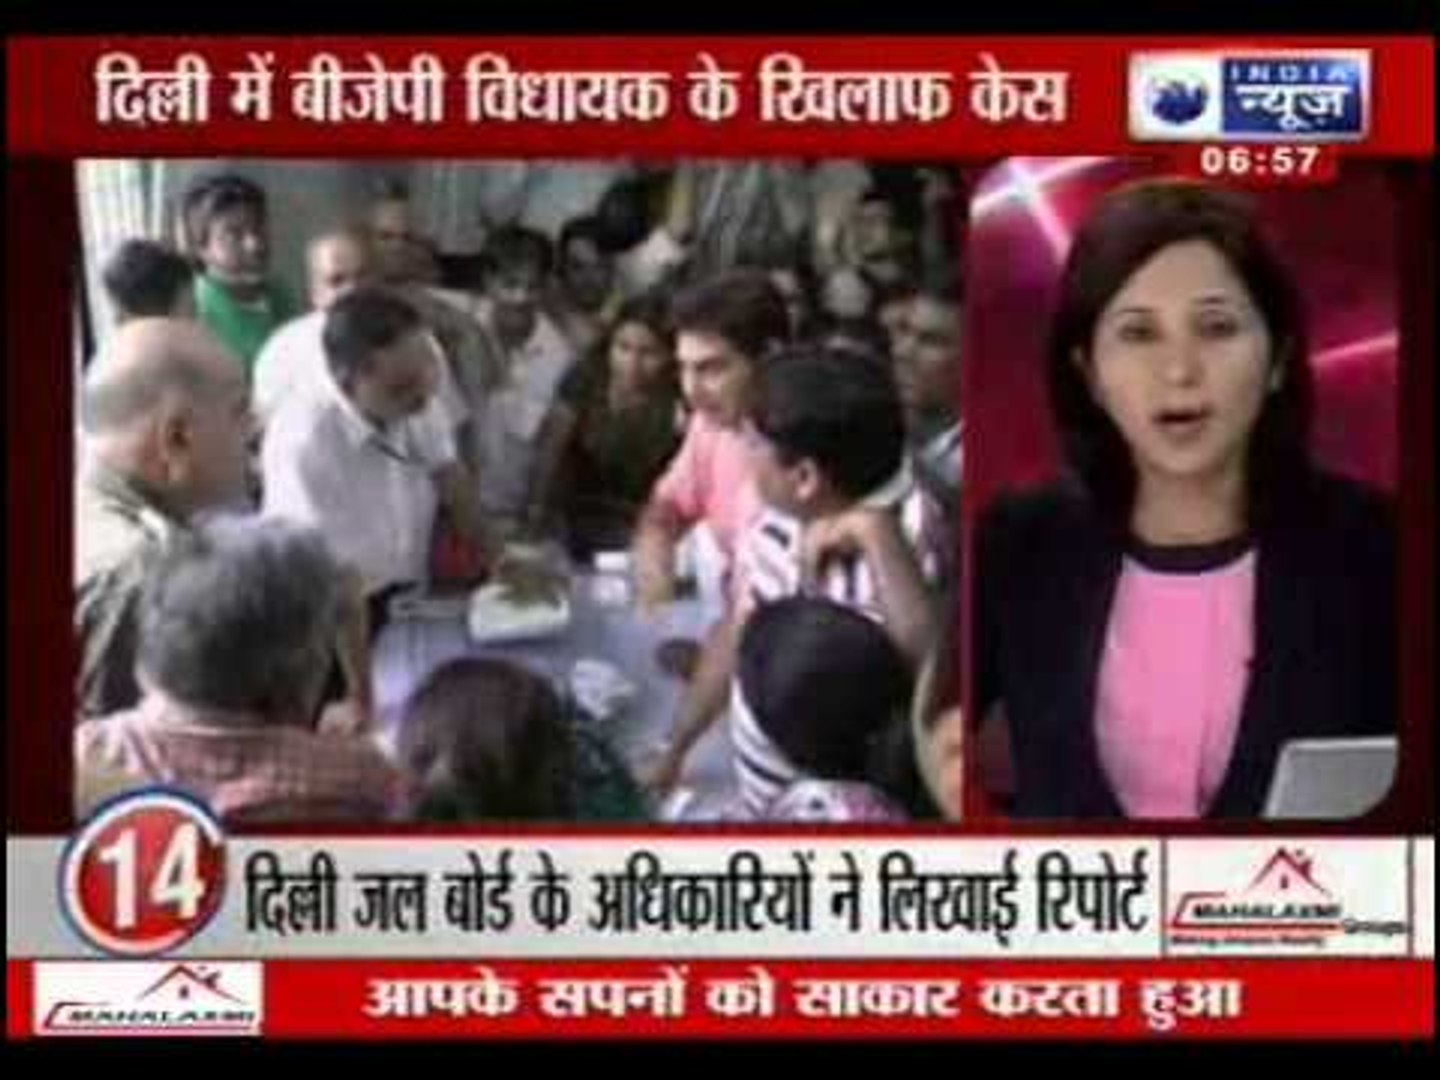 India News: News 25 24th July 2013 7 P.M.